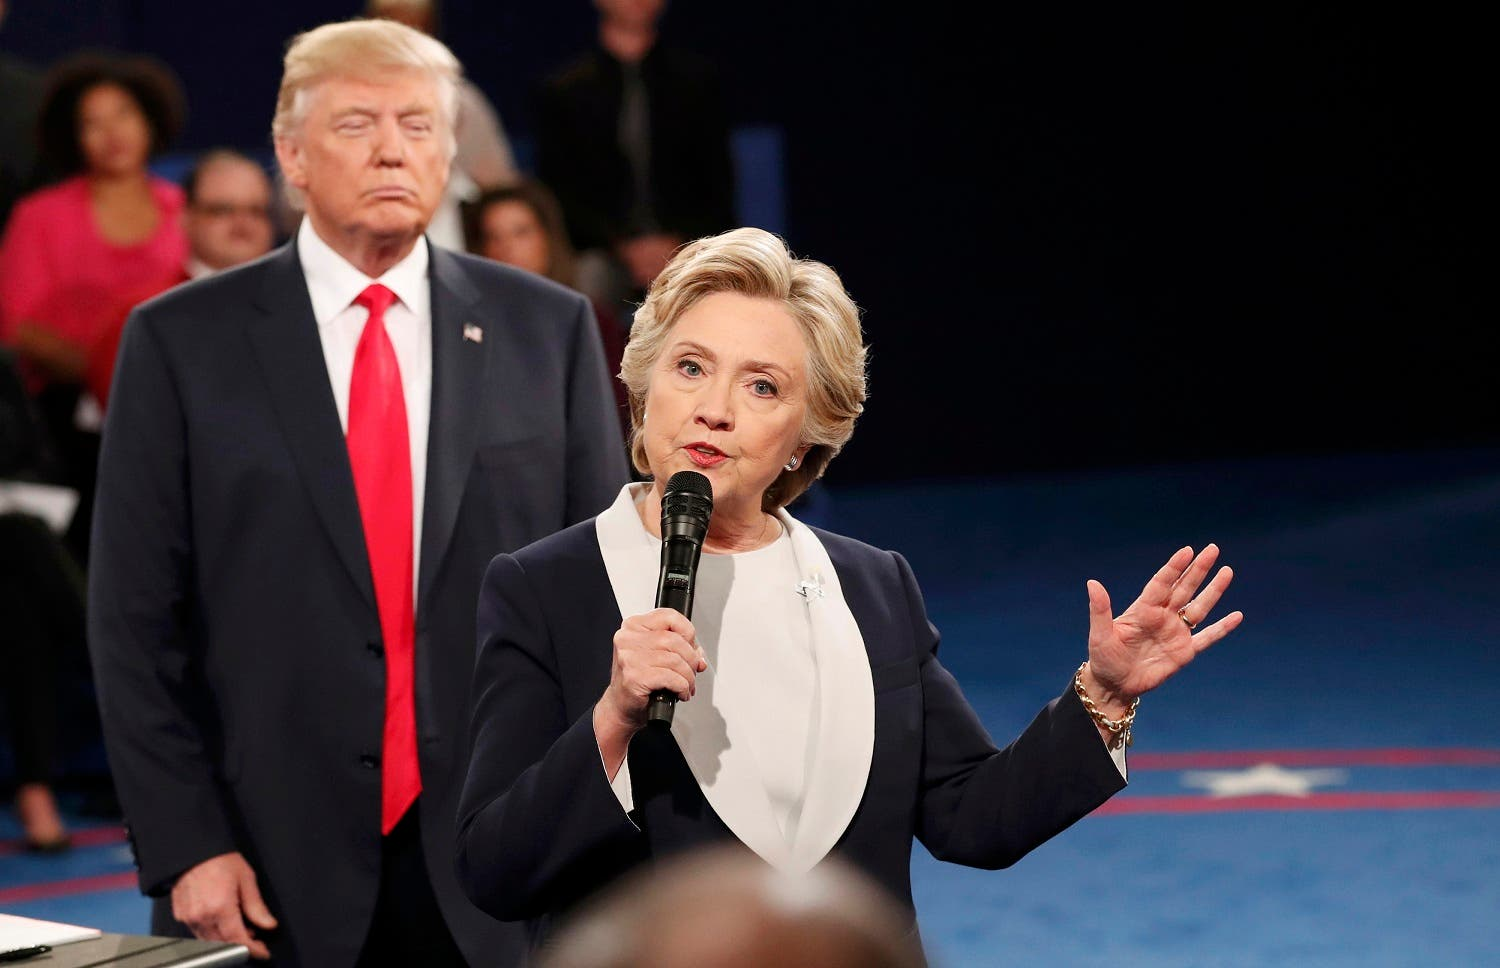 Clinton said during the debate that sending US ground troops to Syria would be a severe mistake. (Reuters)